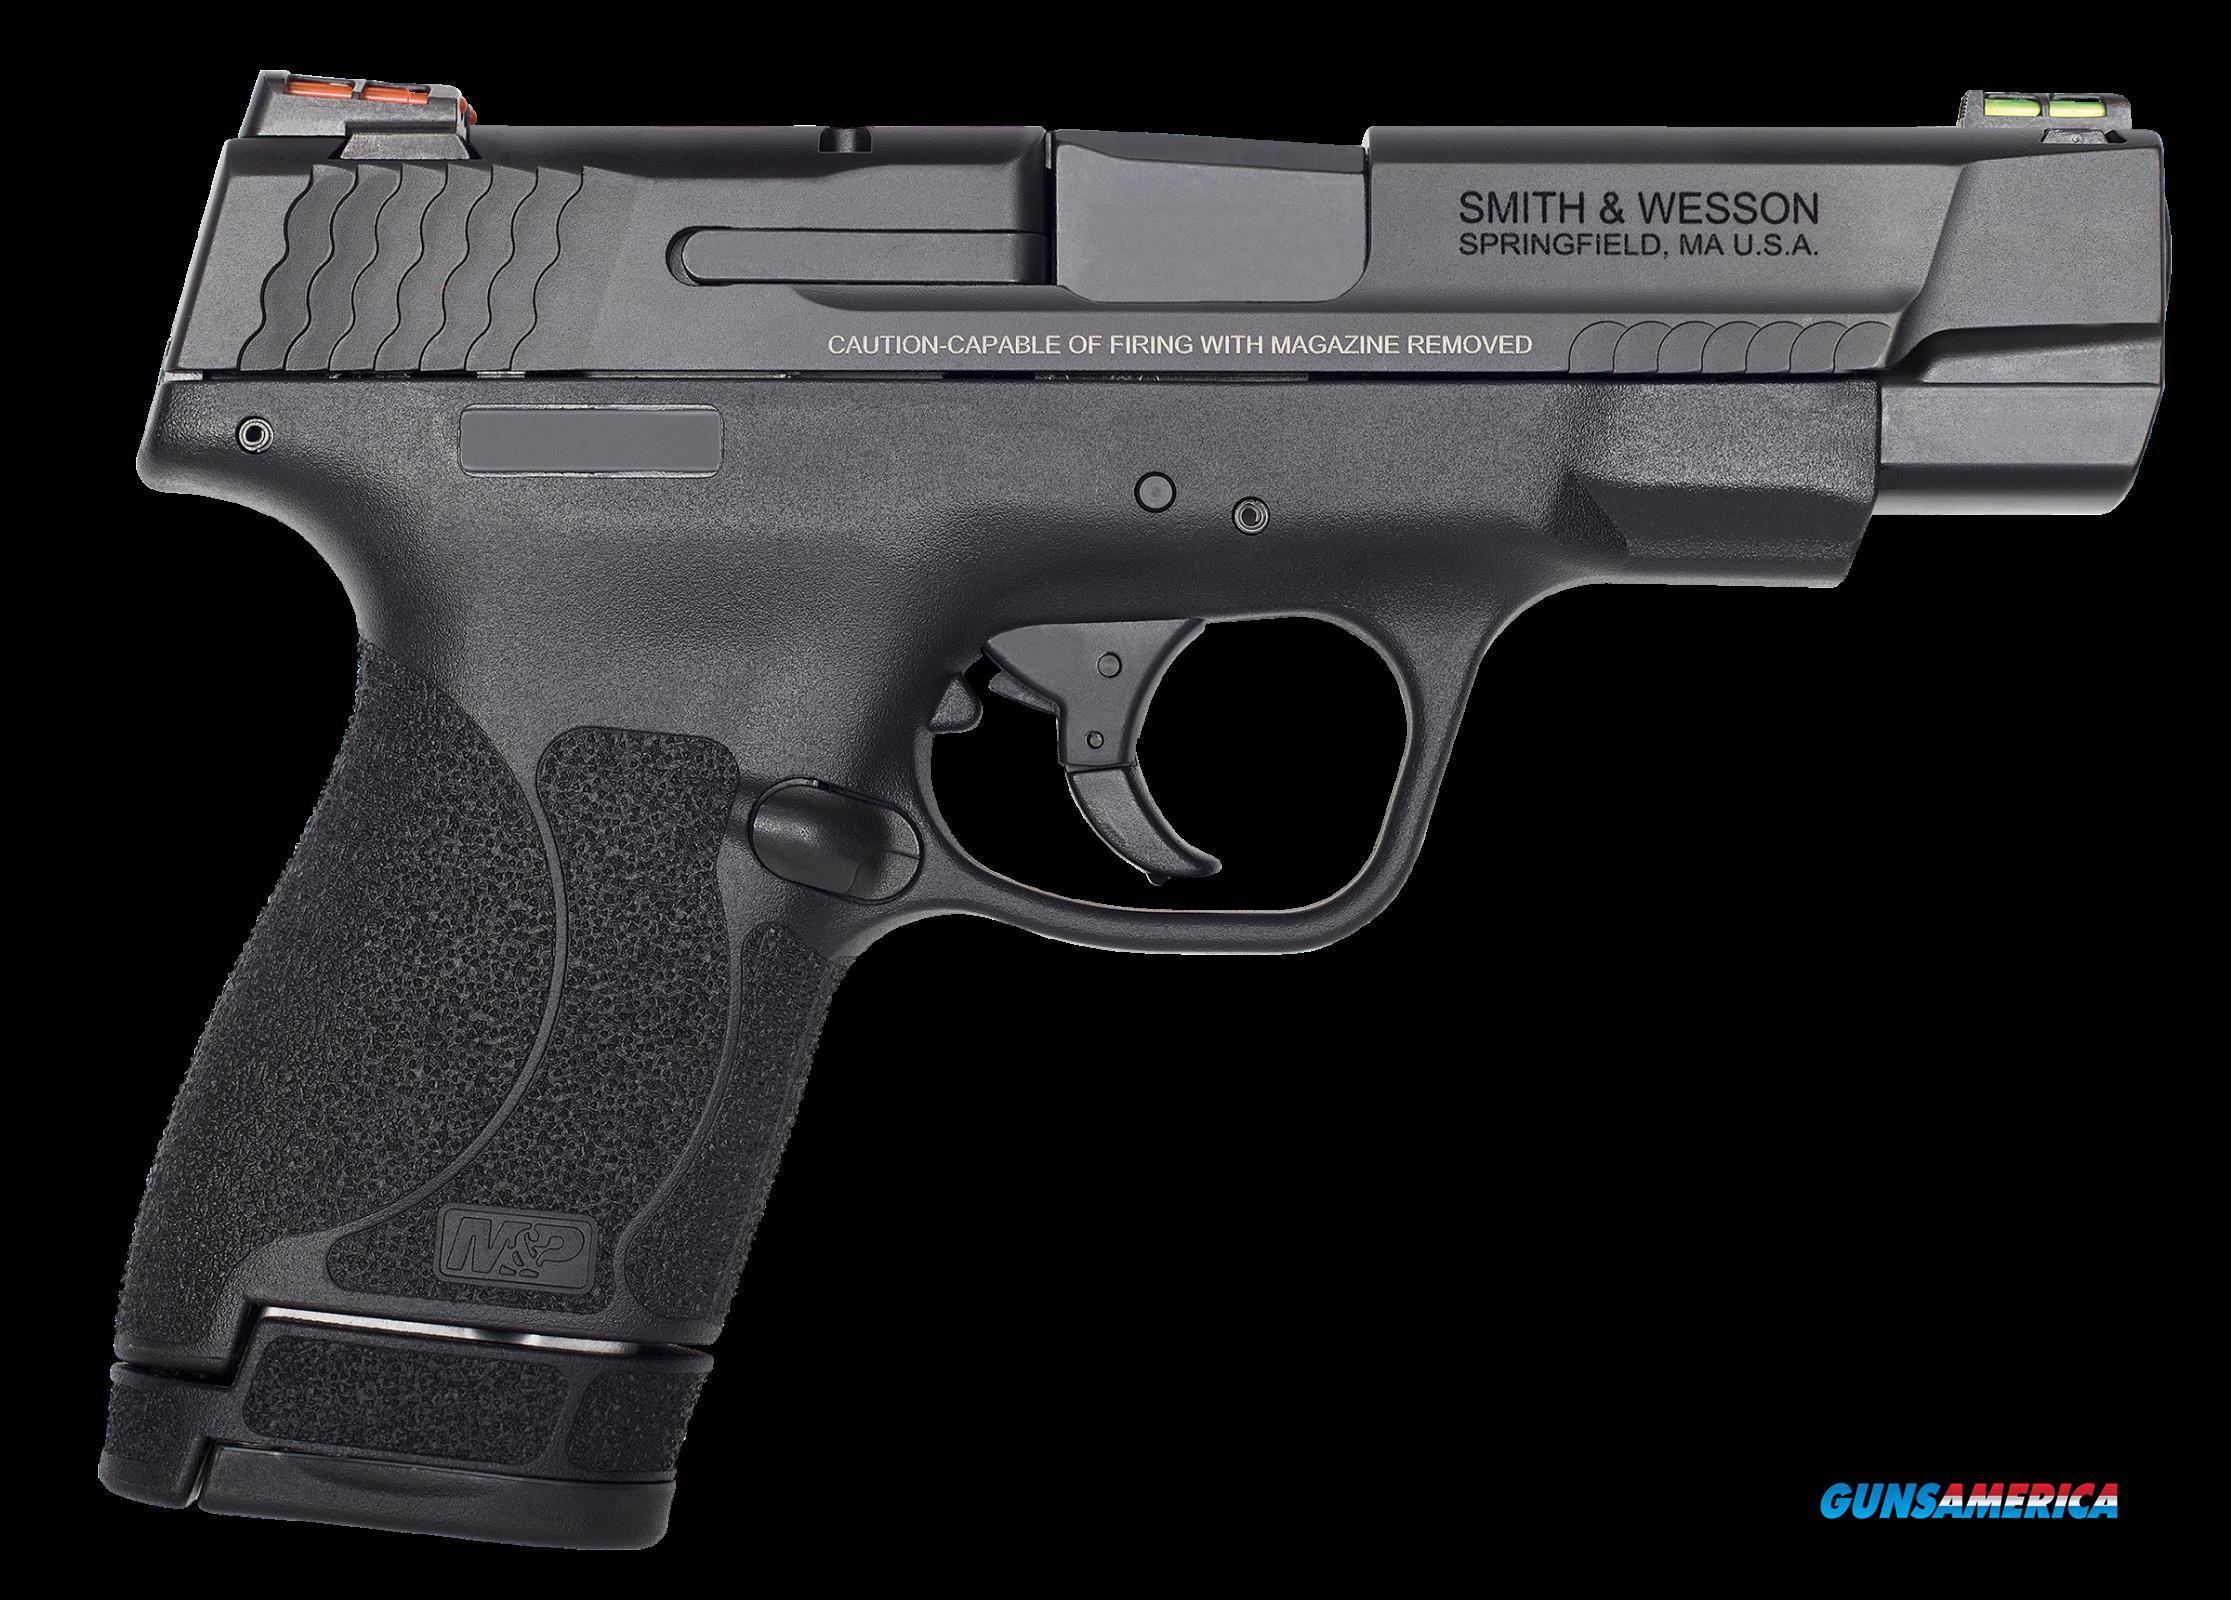 Smith & Wesson M&p 40, S&w M&p40shld  11796 Pfmc 40 2.0 4in Fo(gr-rd)7-6r  Guns > Pistols > 1911 Pistol Copies (non-Colt)